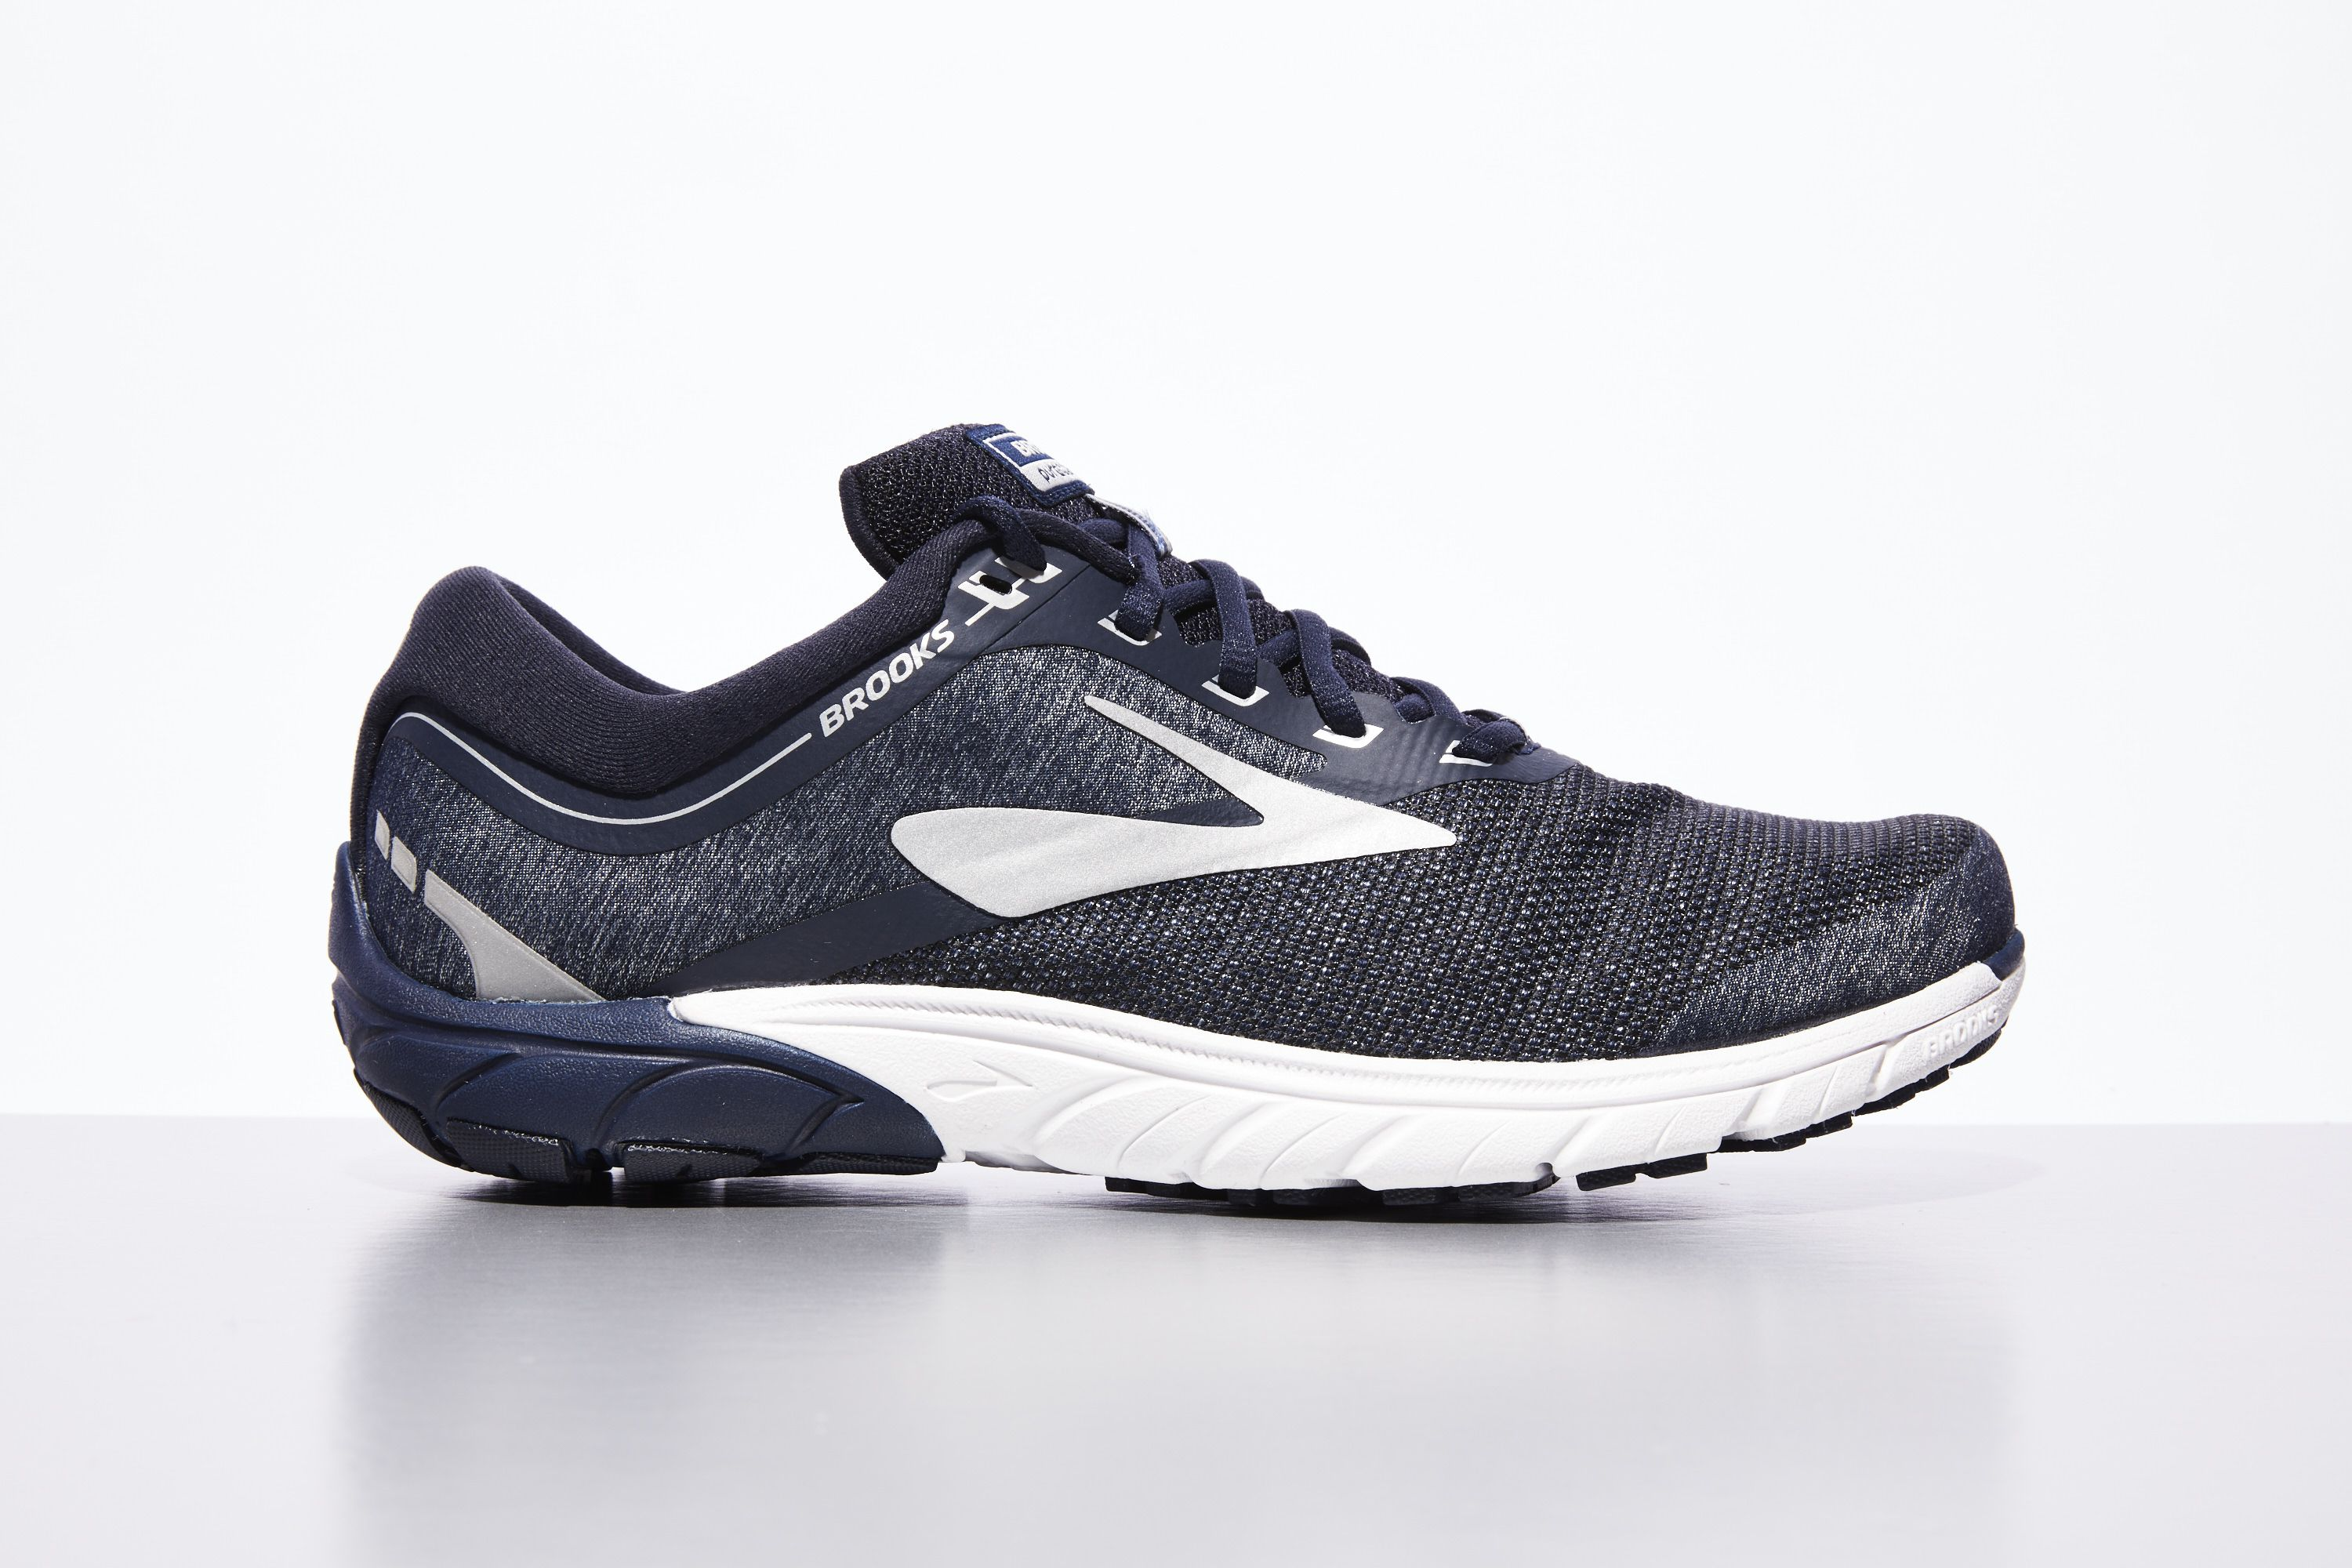 969d5faecde Best Brooks Running Shoes